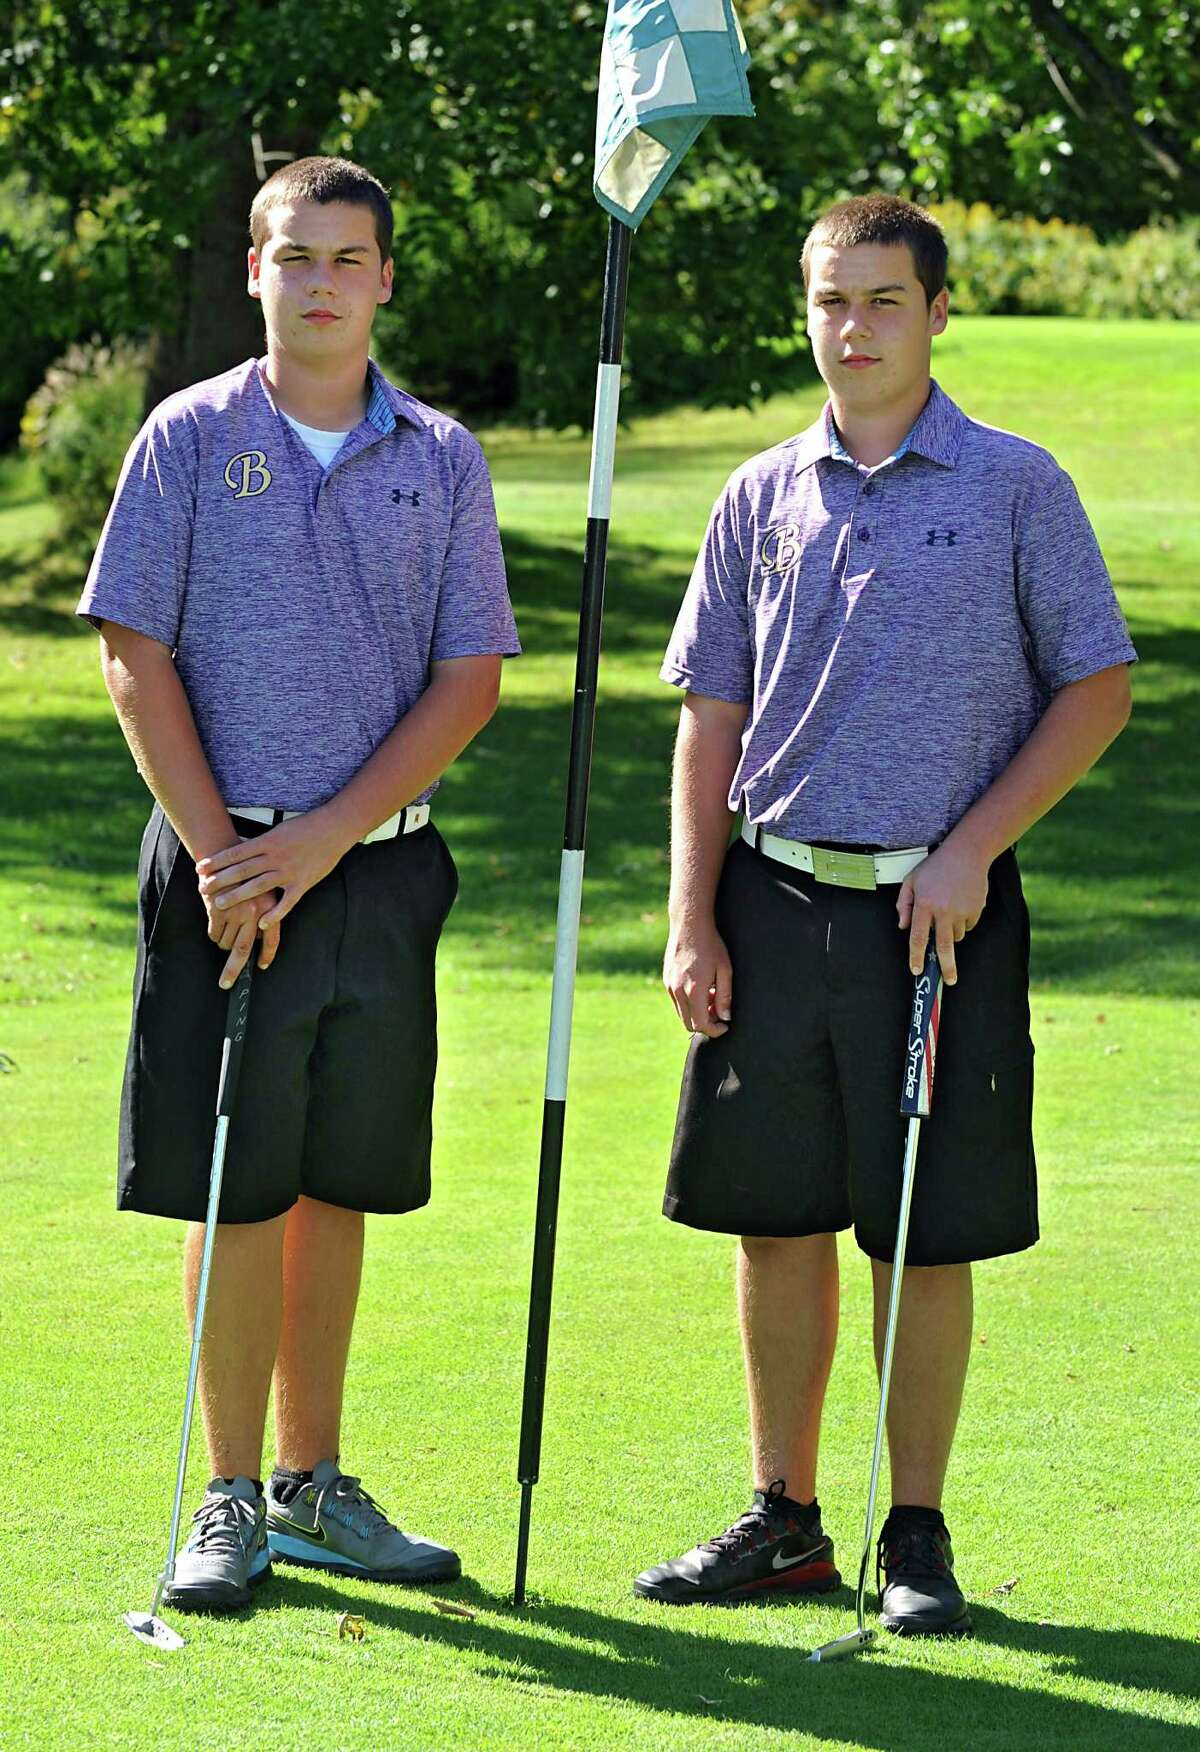 CBA golf team twins Connor, left, and Kyle Adams before a match against Shaker at Town of Colonie Golf Course on Tuesday, Sept. 15, 2015 in Colonie, N.Y. (Lori Van Buren / Times Union)